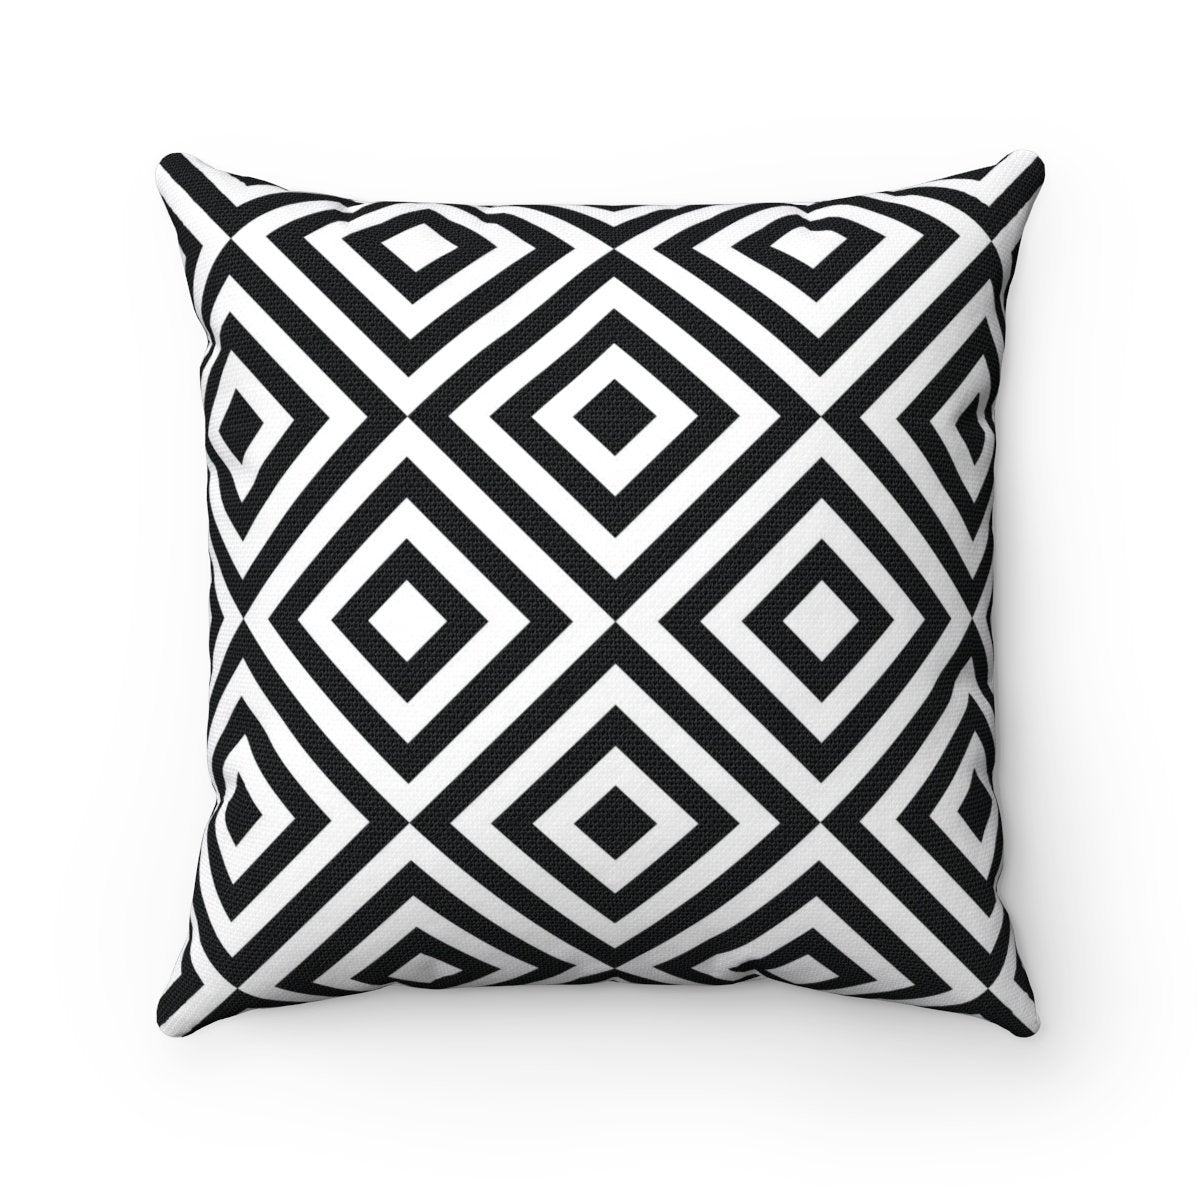 Black and White abstract decorative cushion cover-Home Decor - Decorative Accents - Pillows & Throws - Decorative Pillows-Maison d'Elite-Très Elite